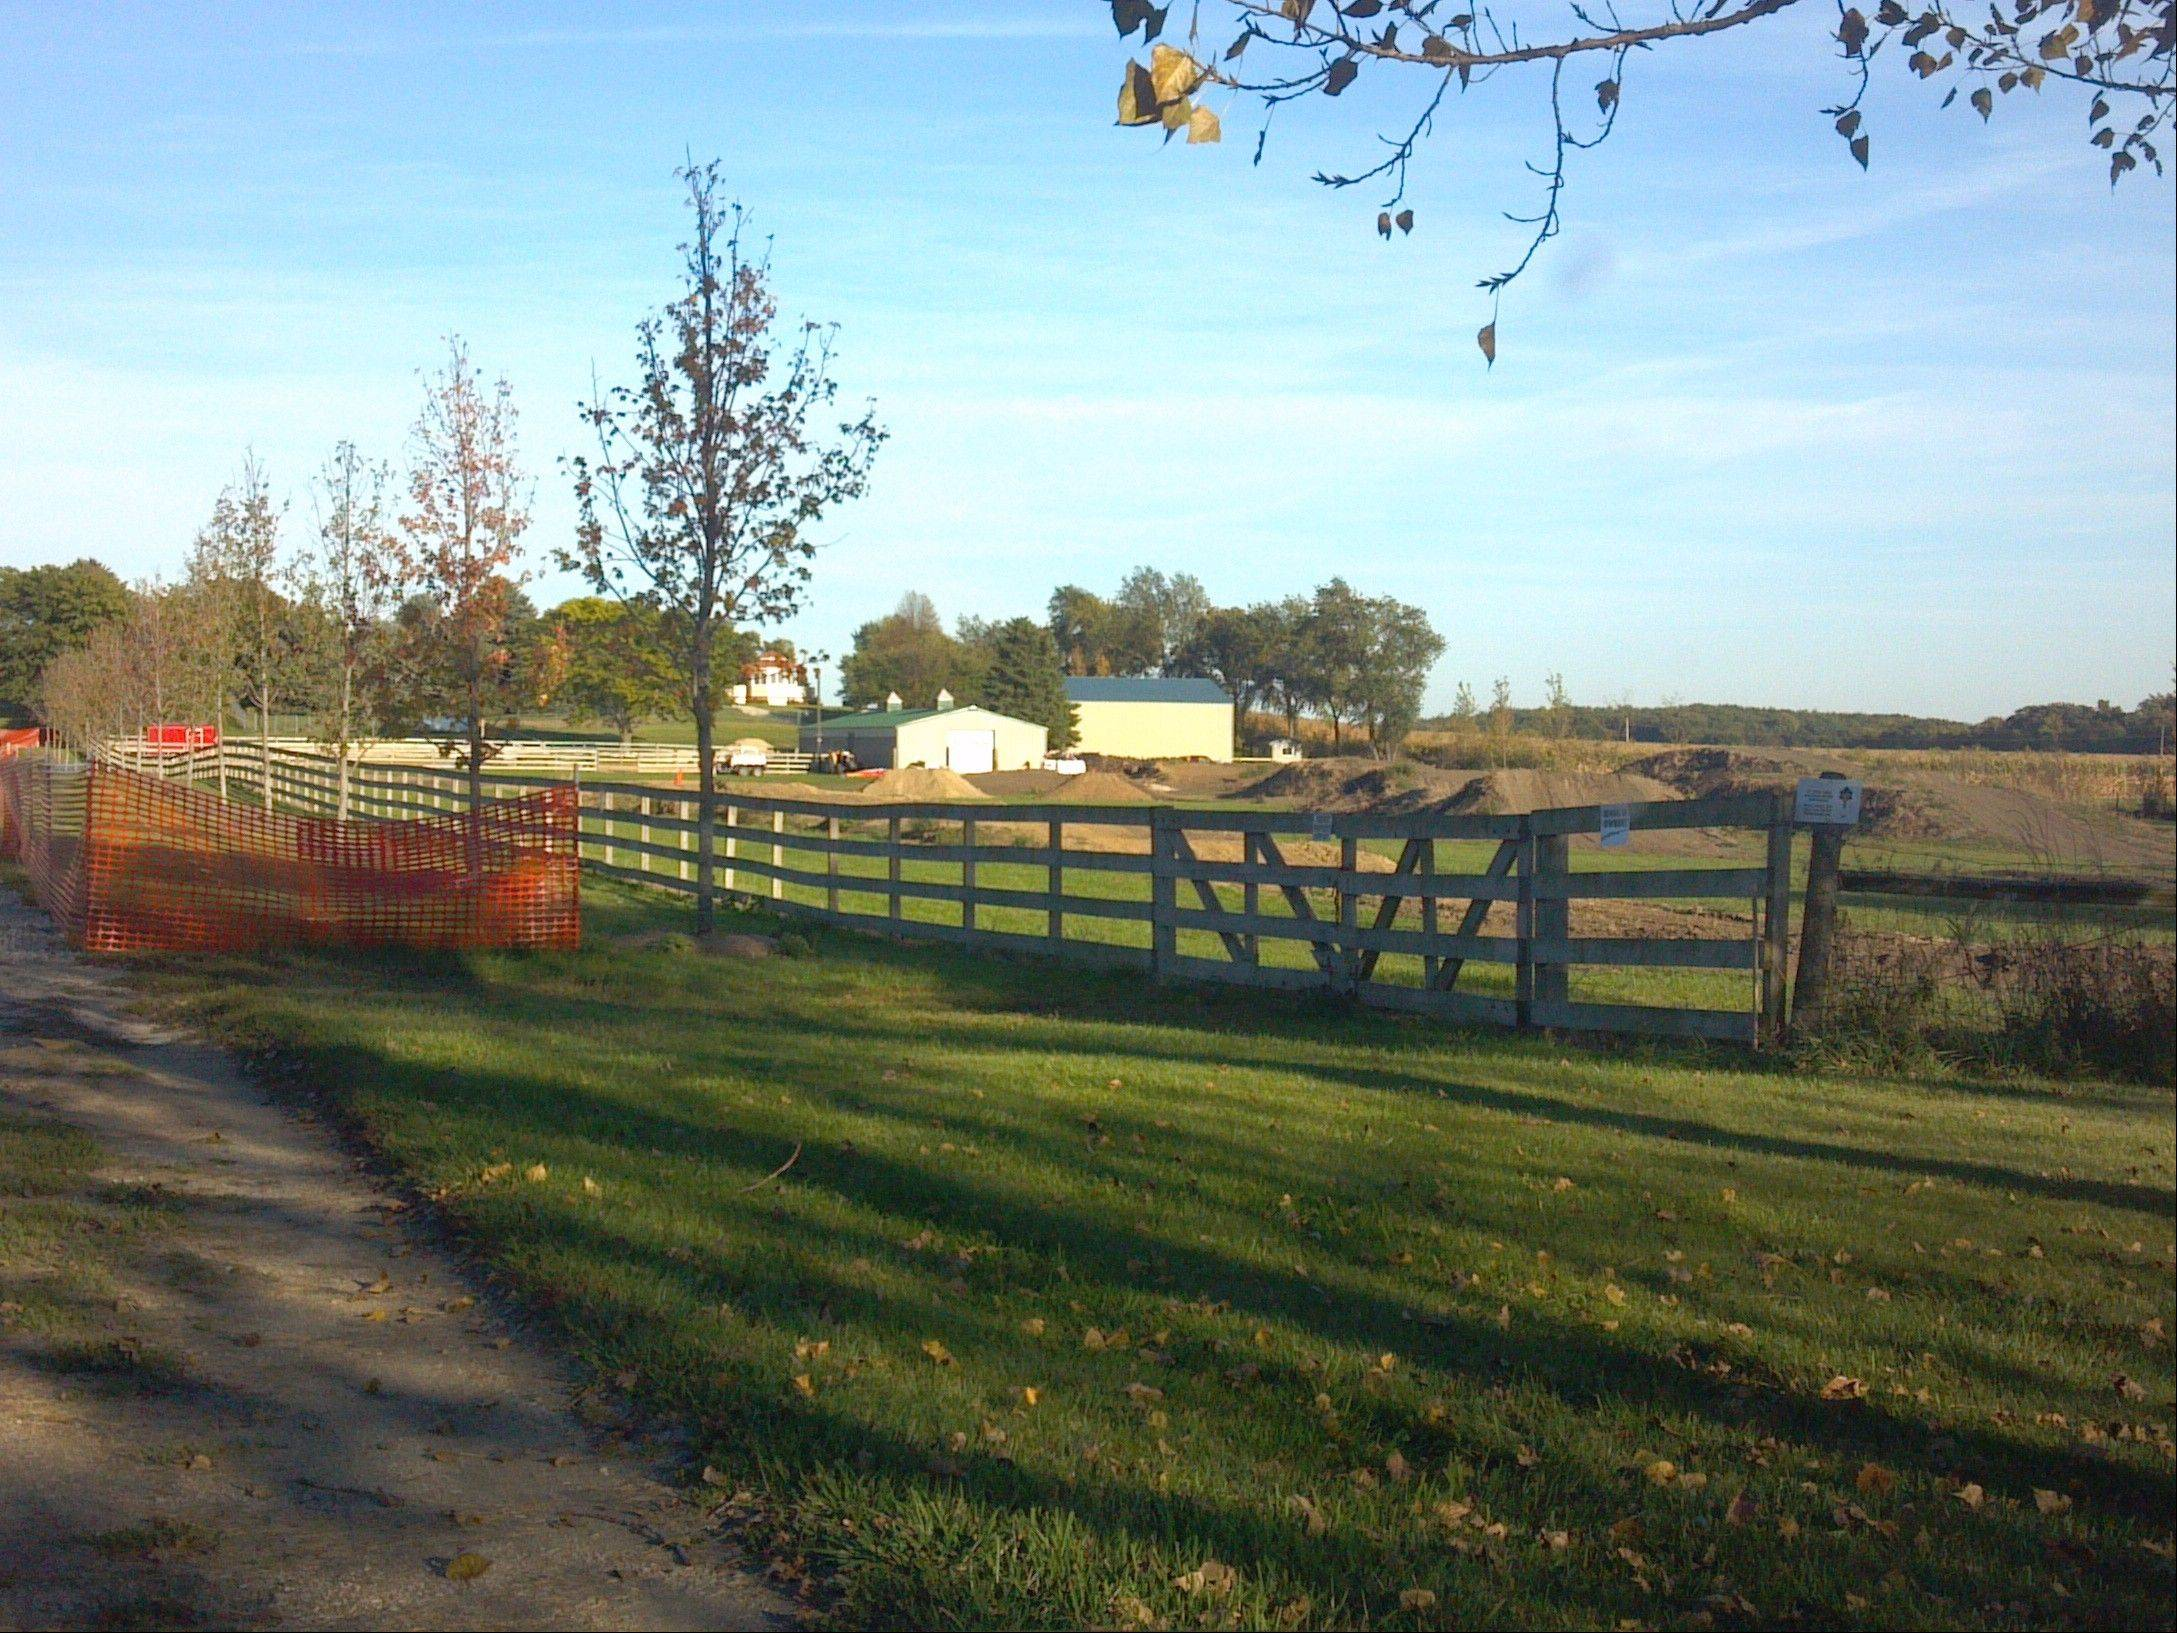 The view from an access road into Epona Farm in Maple Park is near a neighbor's motocross track, the subject of a lawsuit by the horse farm owner, claiming the motorcycles there scare her horses and have damaged her business.